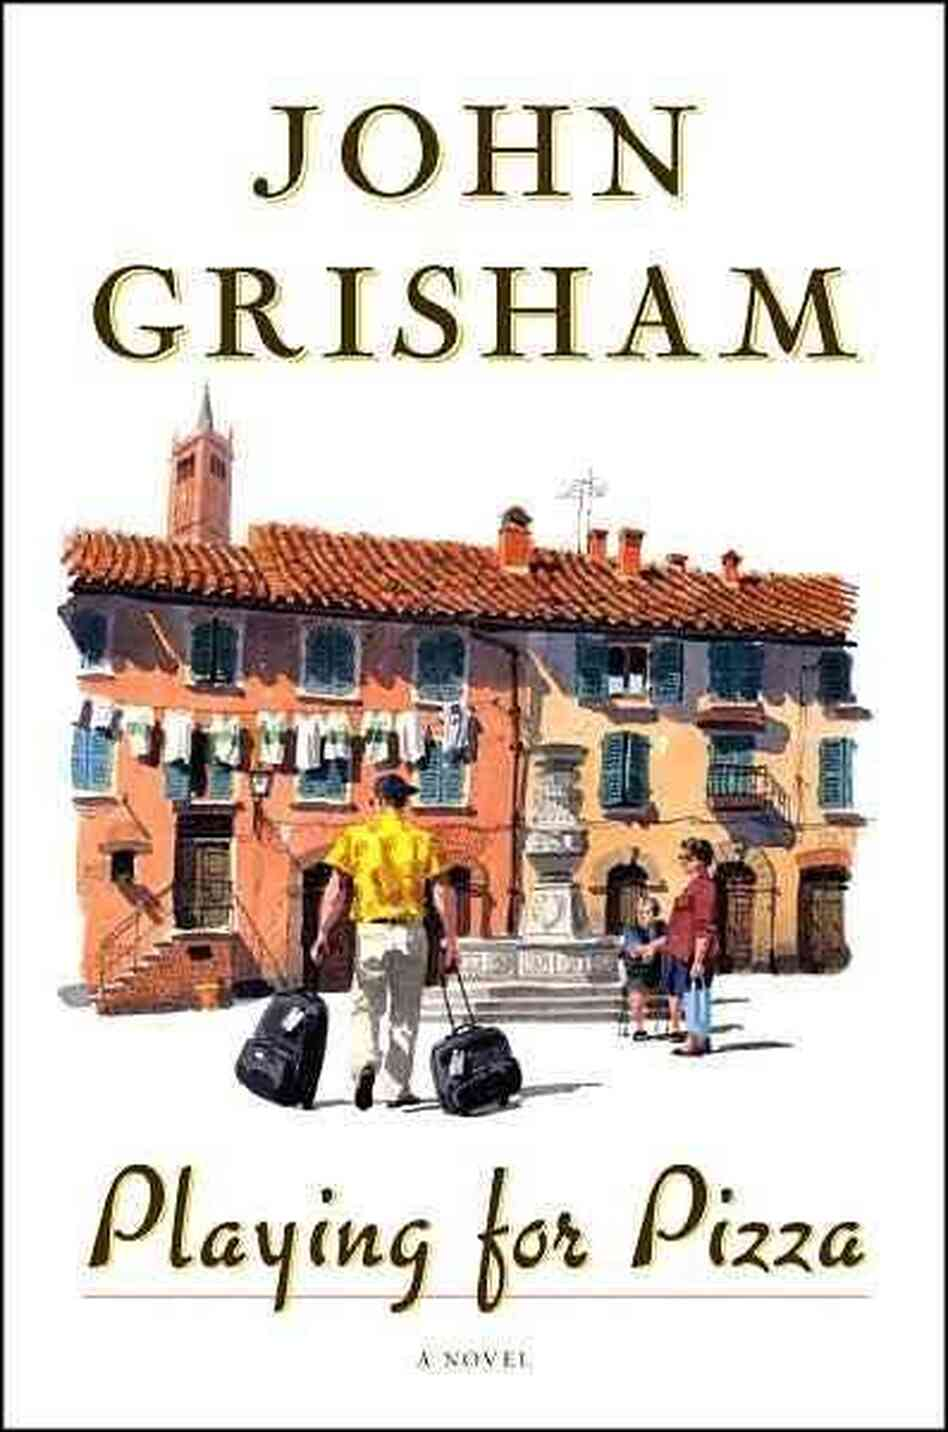 a synopsis and features of john grishams novels The firm is a 1991 legal thriller by american writer john grisham his second book, it was grisham's first which gained wide popularity in 1993, after selling 15 million copies, it was made into a film starring tom cruise , gene hackman and jeanne tripplehorn.